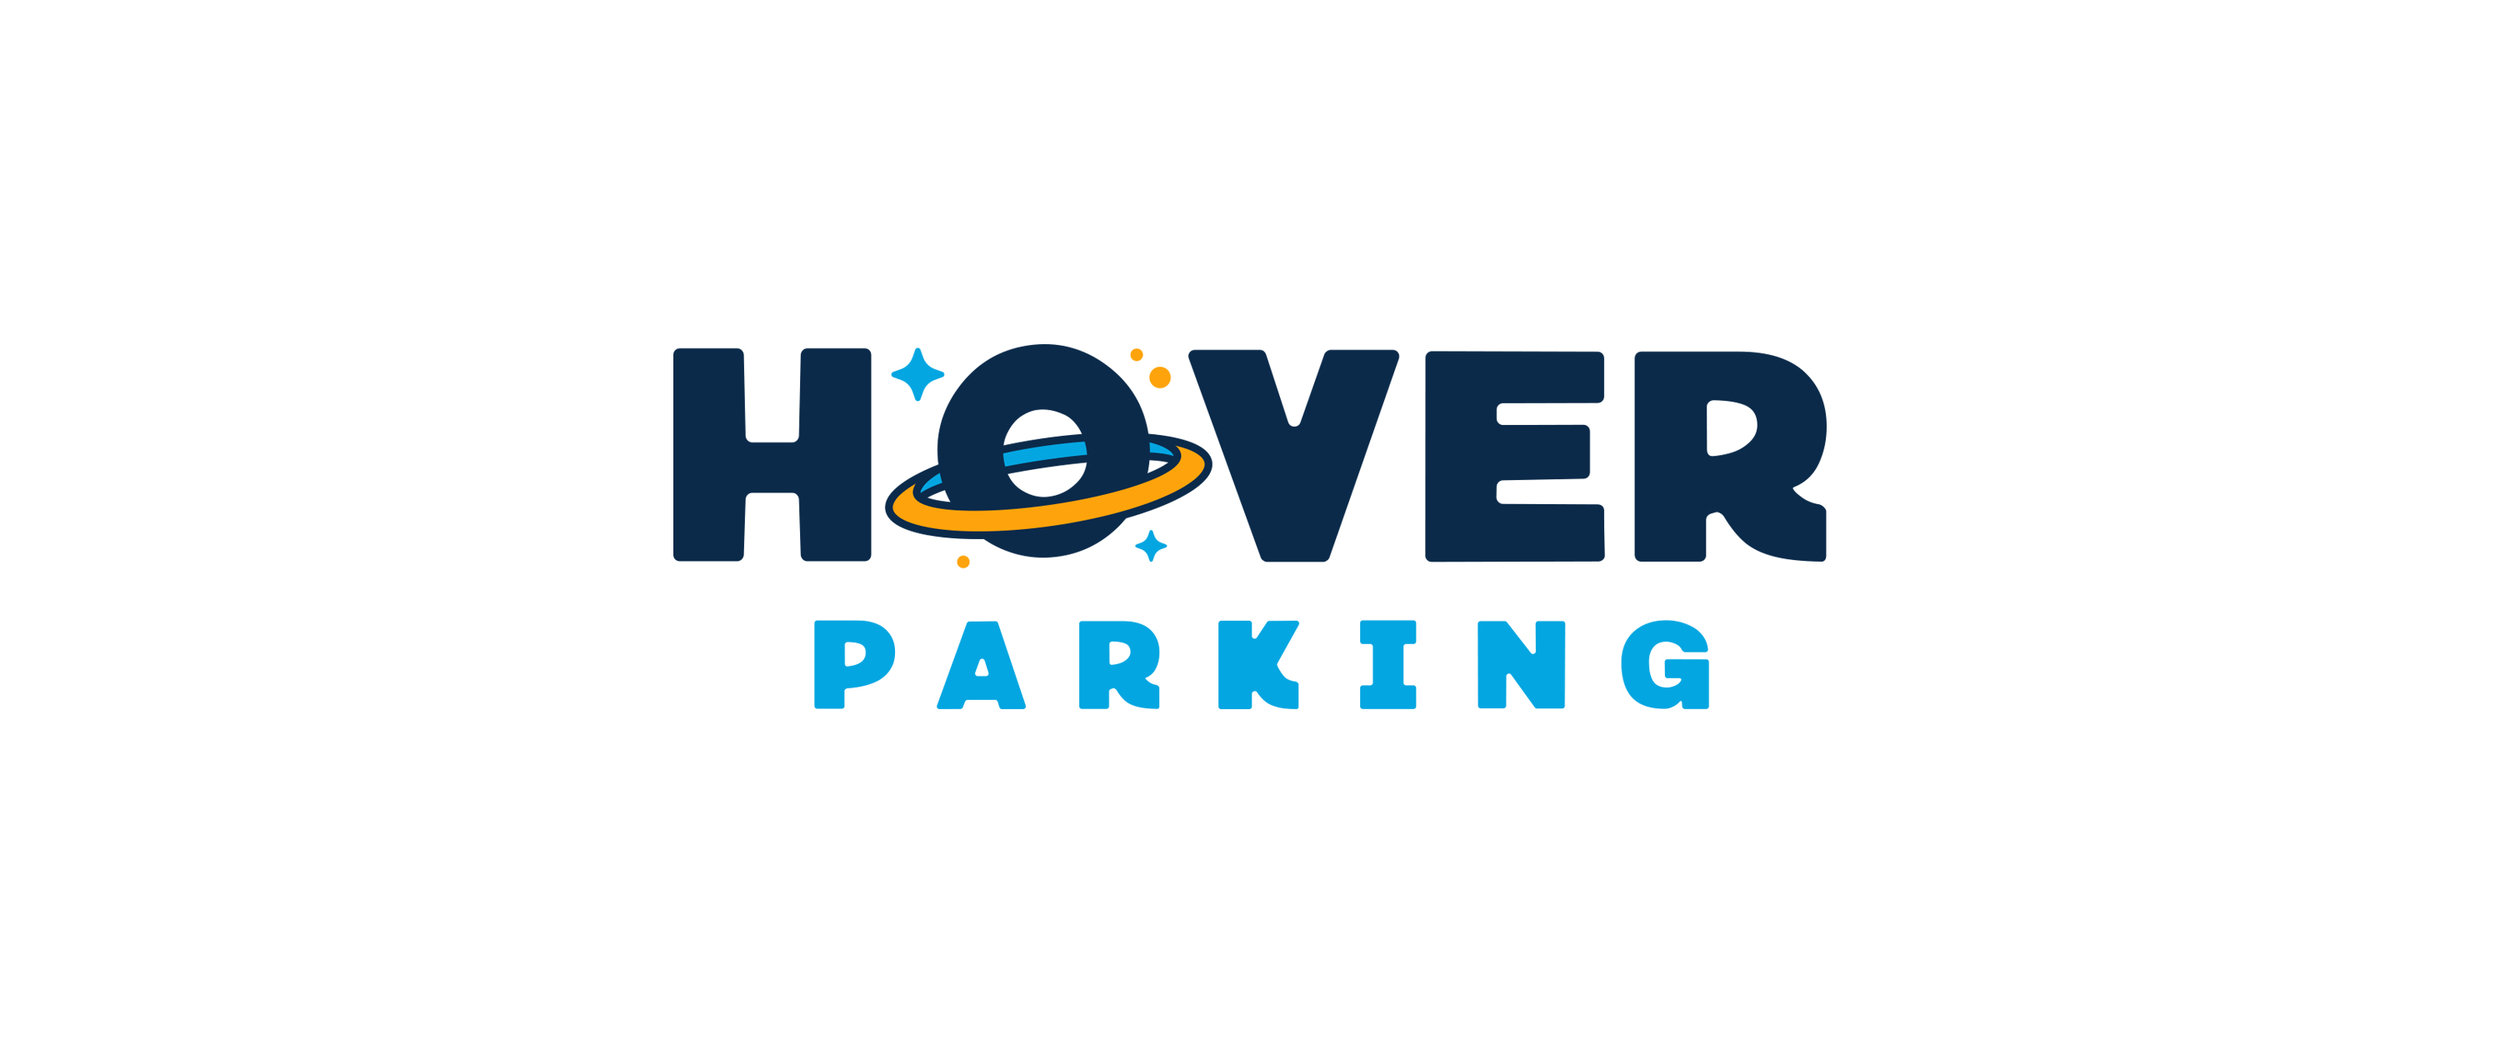 A Denver-based startup that helps manage digital parking permits for private, residential lots